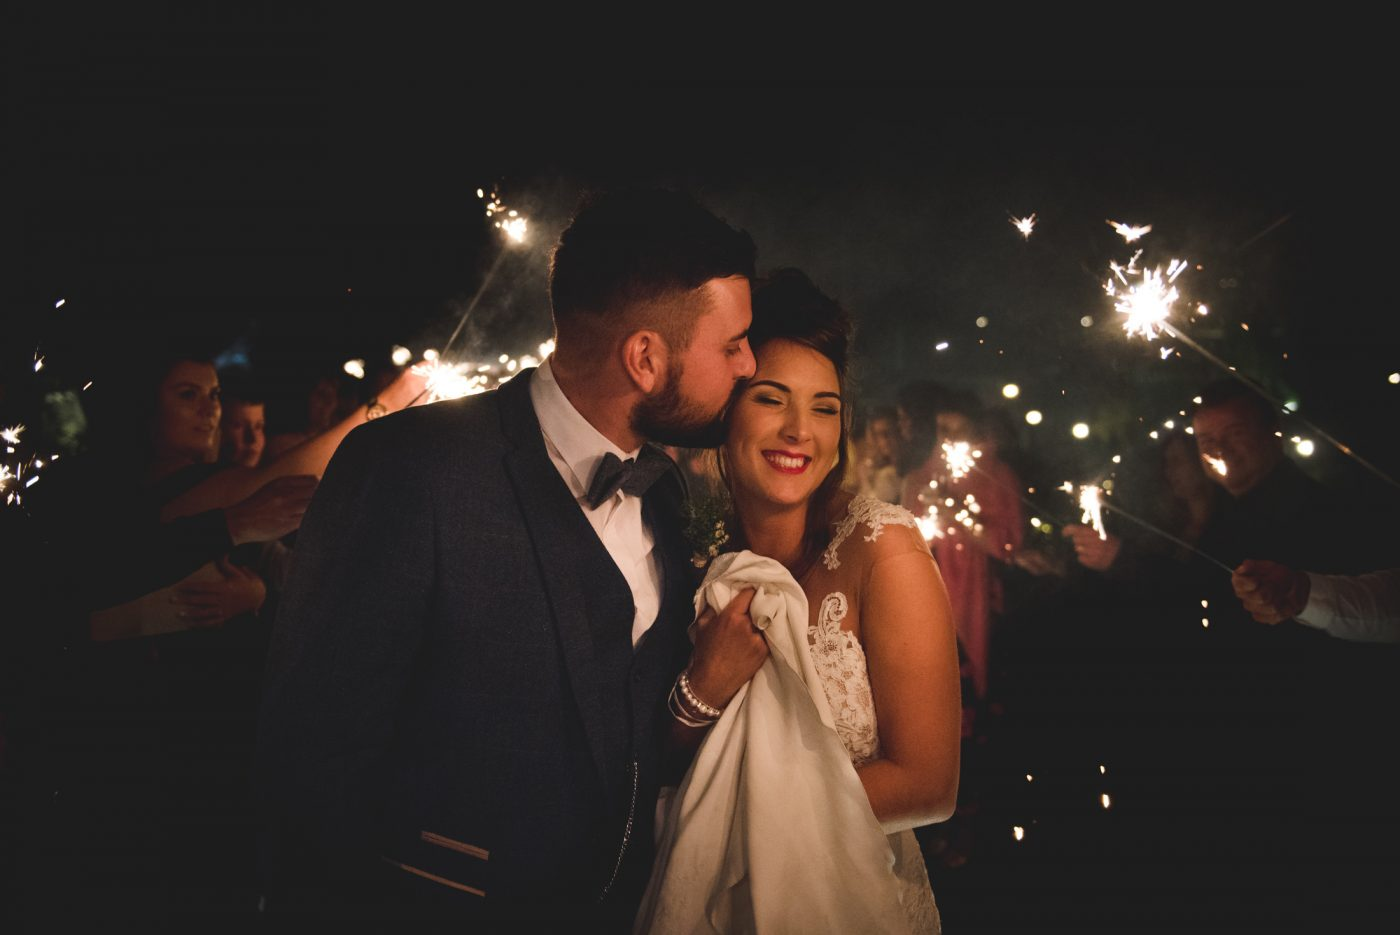 Wedding Photography by Night Moments